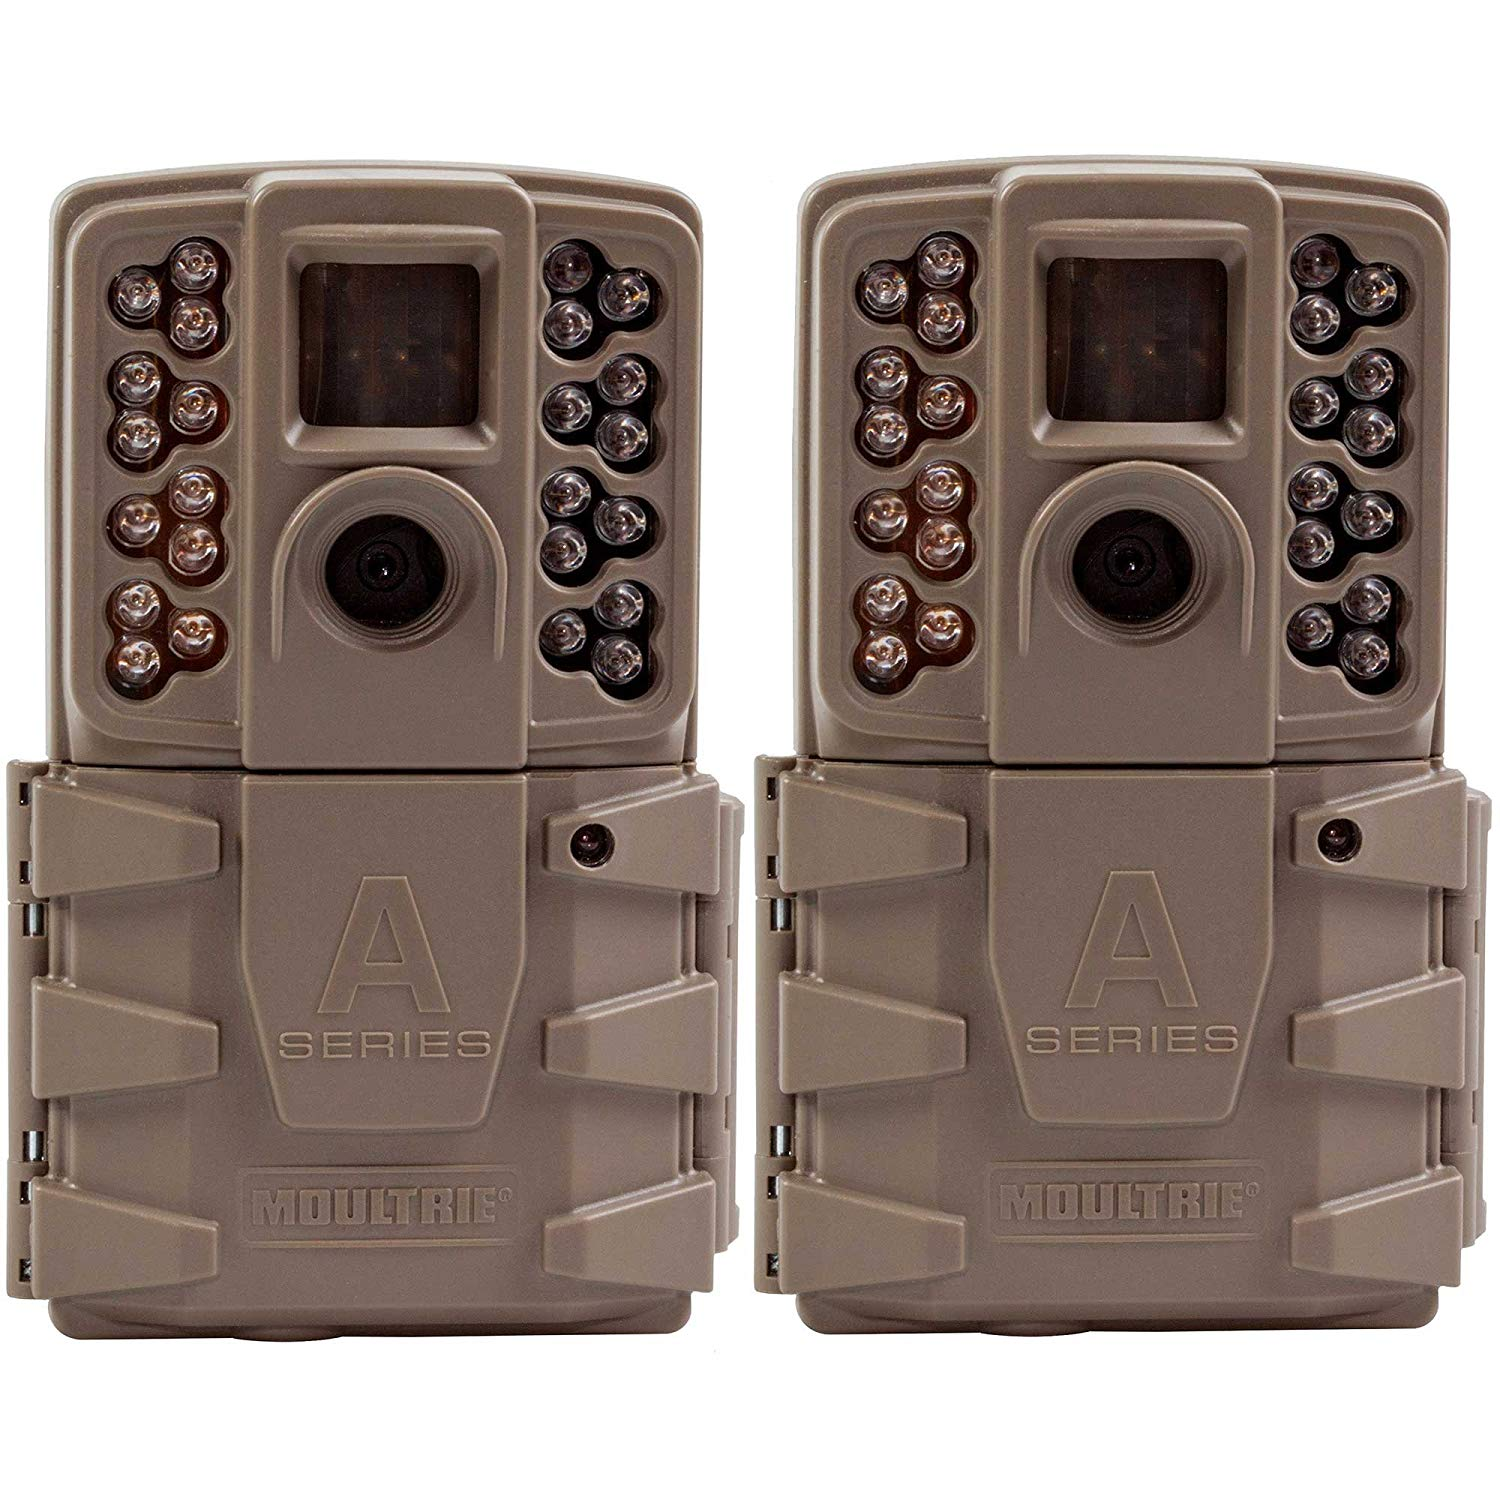 Moultrie A-30 12MP Game Trail Camera (2 Pack) | MCG-13201